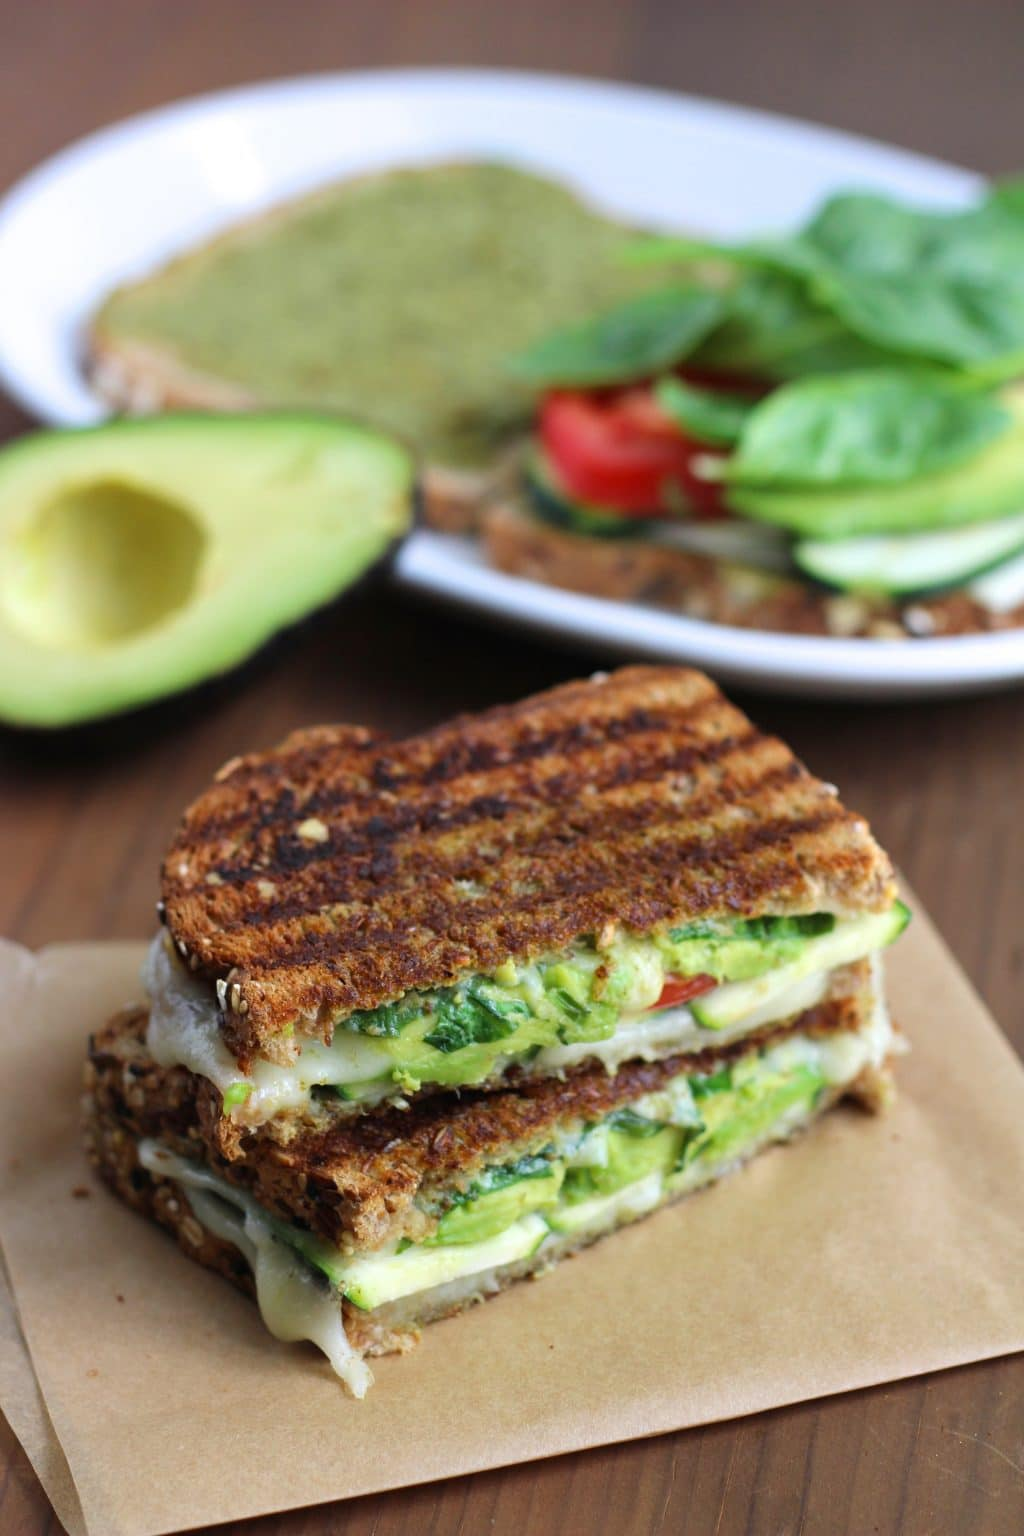 A sandwich cut in half and stacked on top of each other on top of a piece of parchment paper next to a white plate and half an avocado.